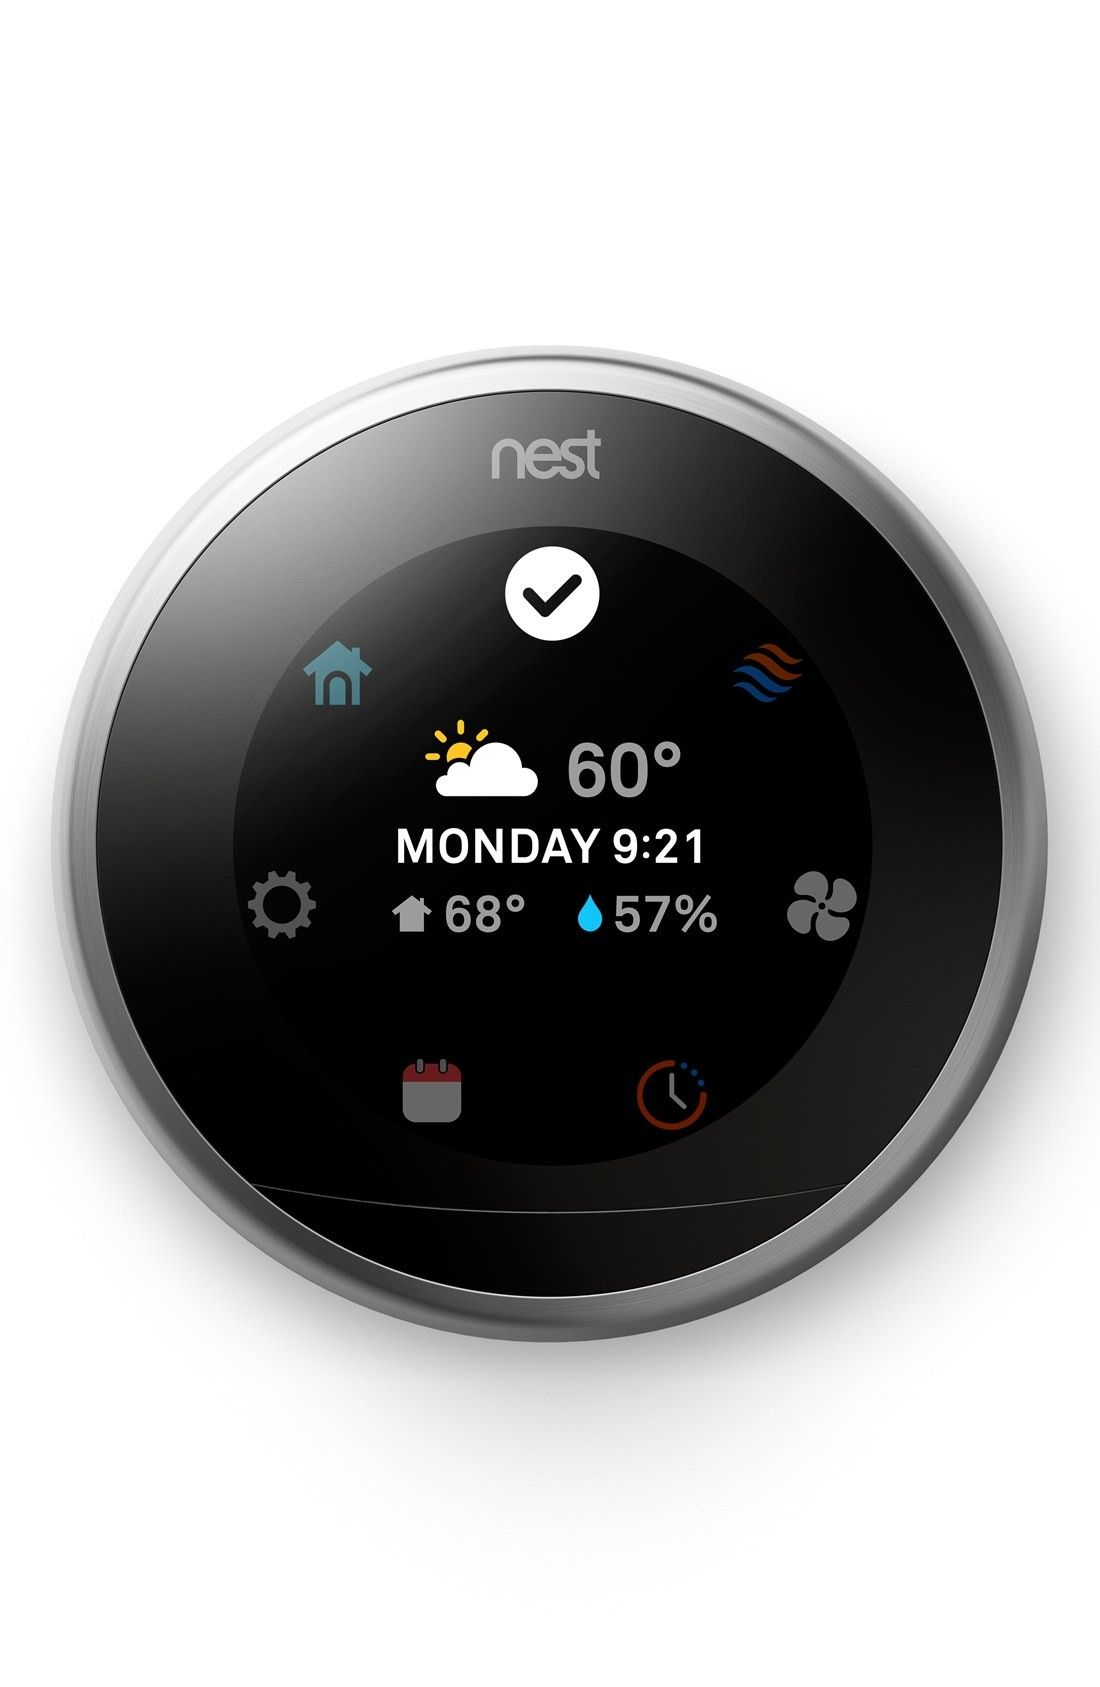 The Perfect Tech Gifts To Give This Holiday Tech Gift Gifts Tech Gifts Tech Gifts For Teens Tech G Nest Thermostat Thermostat